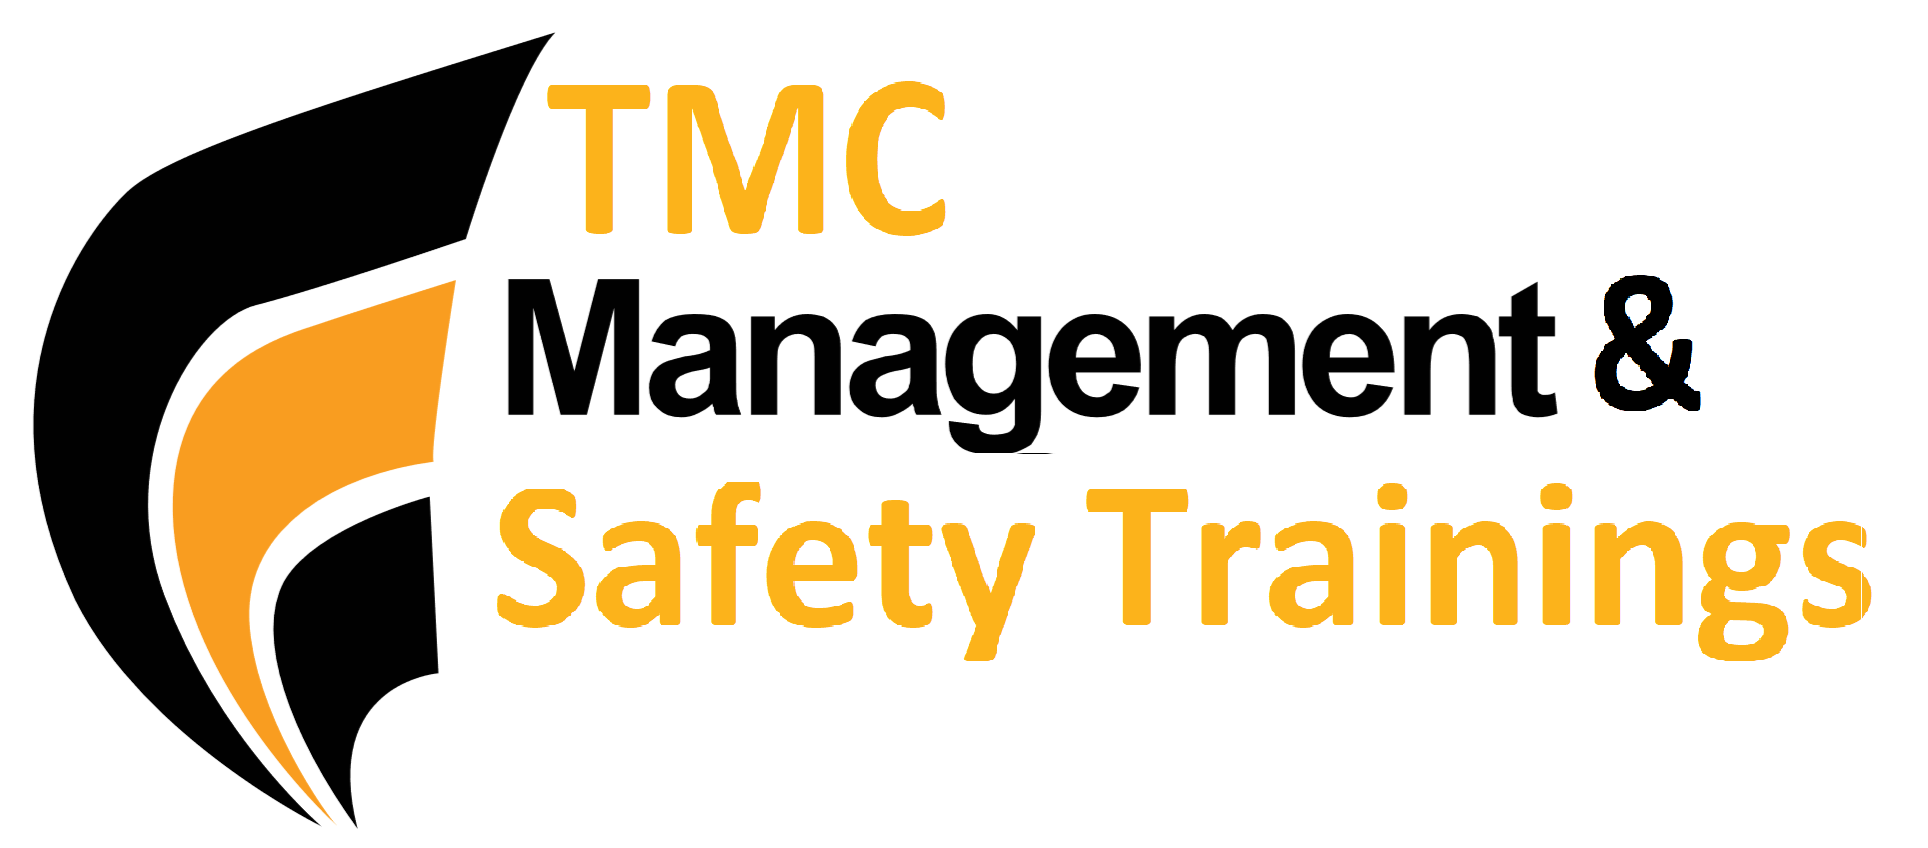 TMC Management and Safety Training